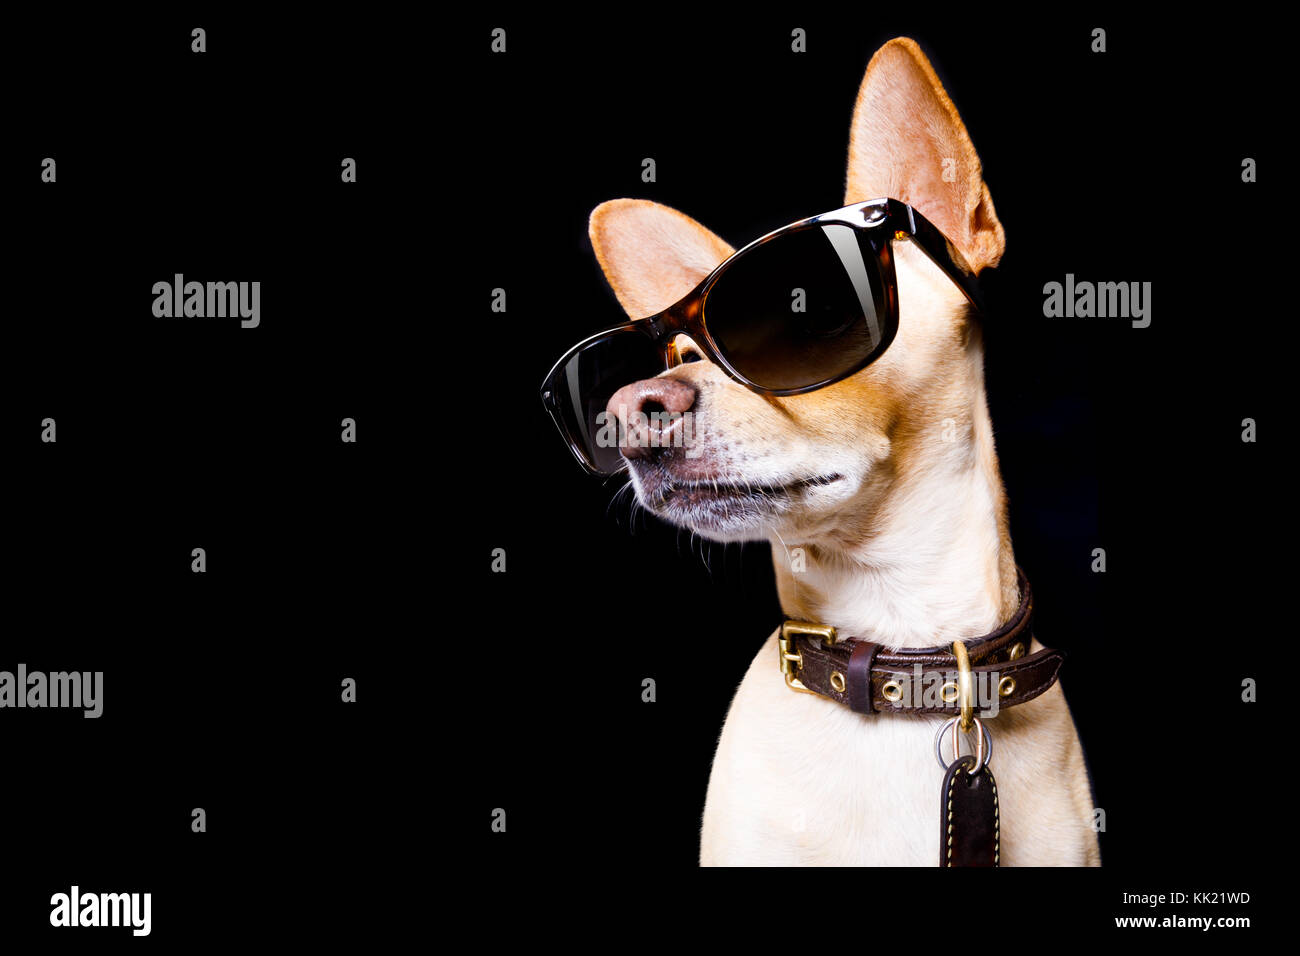 Amazoncom  Cydnlive Cool Stylish and Funny Cute Pet